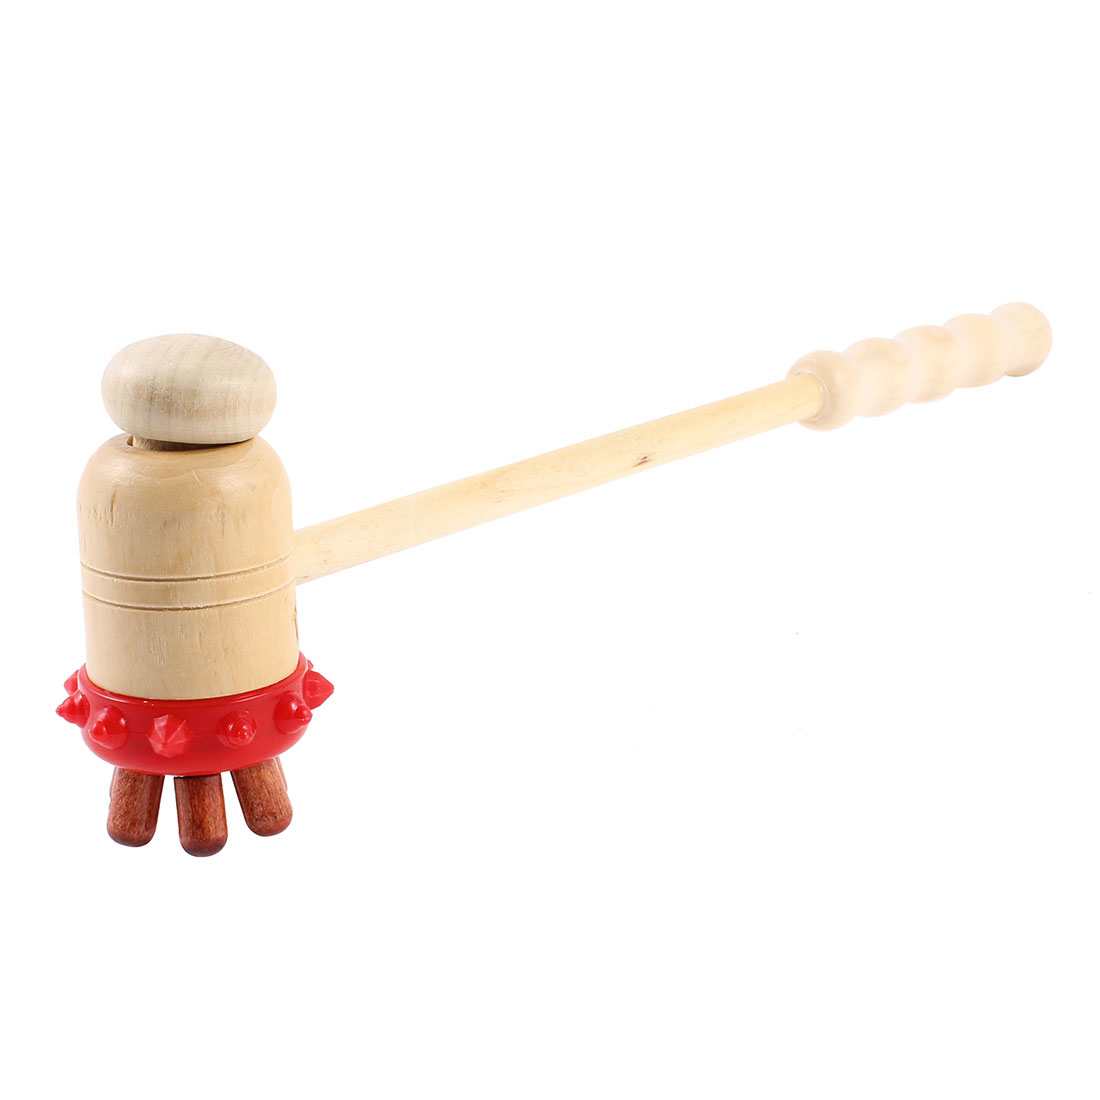 "Beige Wooden Handgrip Body Shoulder Back Massage Hammer Stick 11.4"" Long"